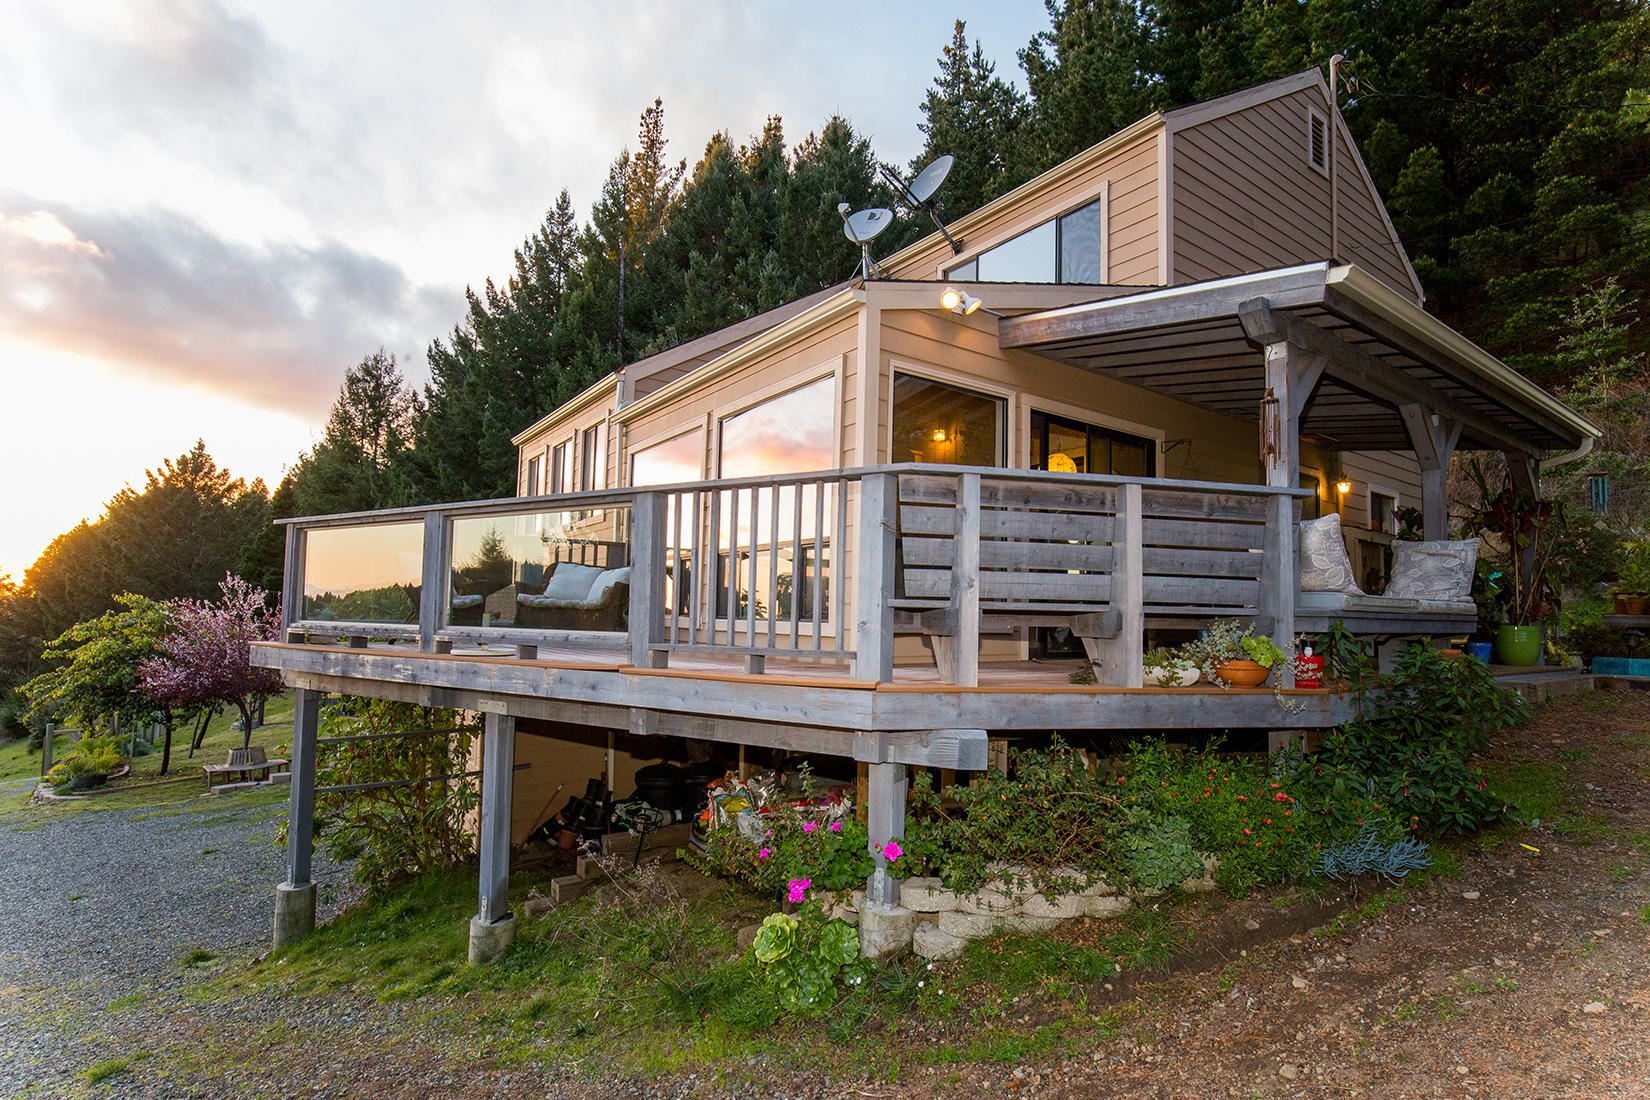 334 Muskrat Circle, Shelter Cove, CA 95589 - MLS#: 258387